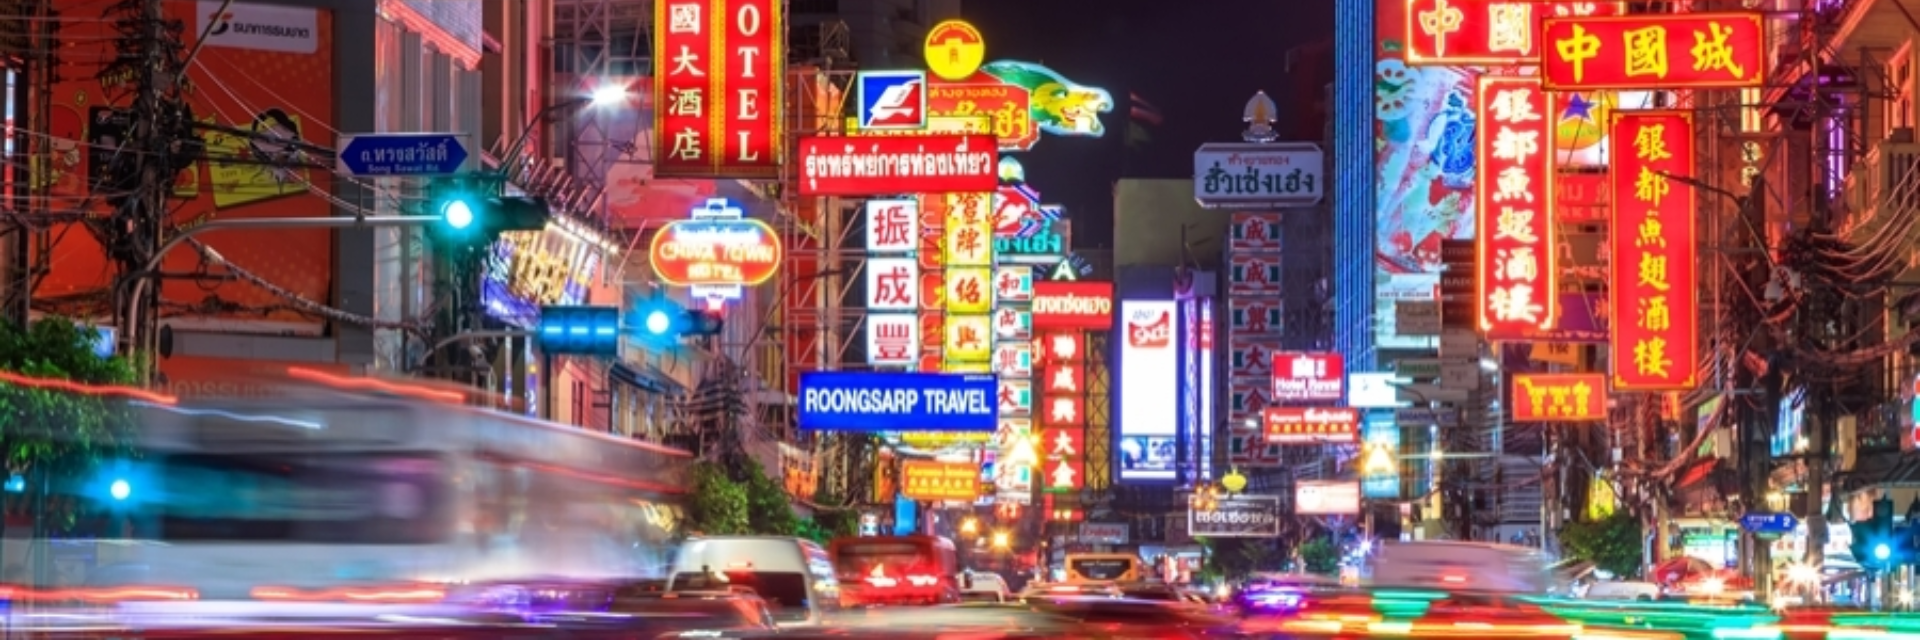 THE ADVENTURE THROUGH BANGKOK'S CHINATOWN